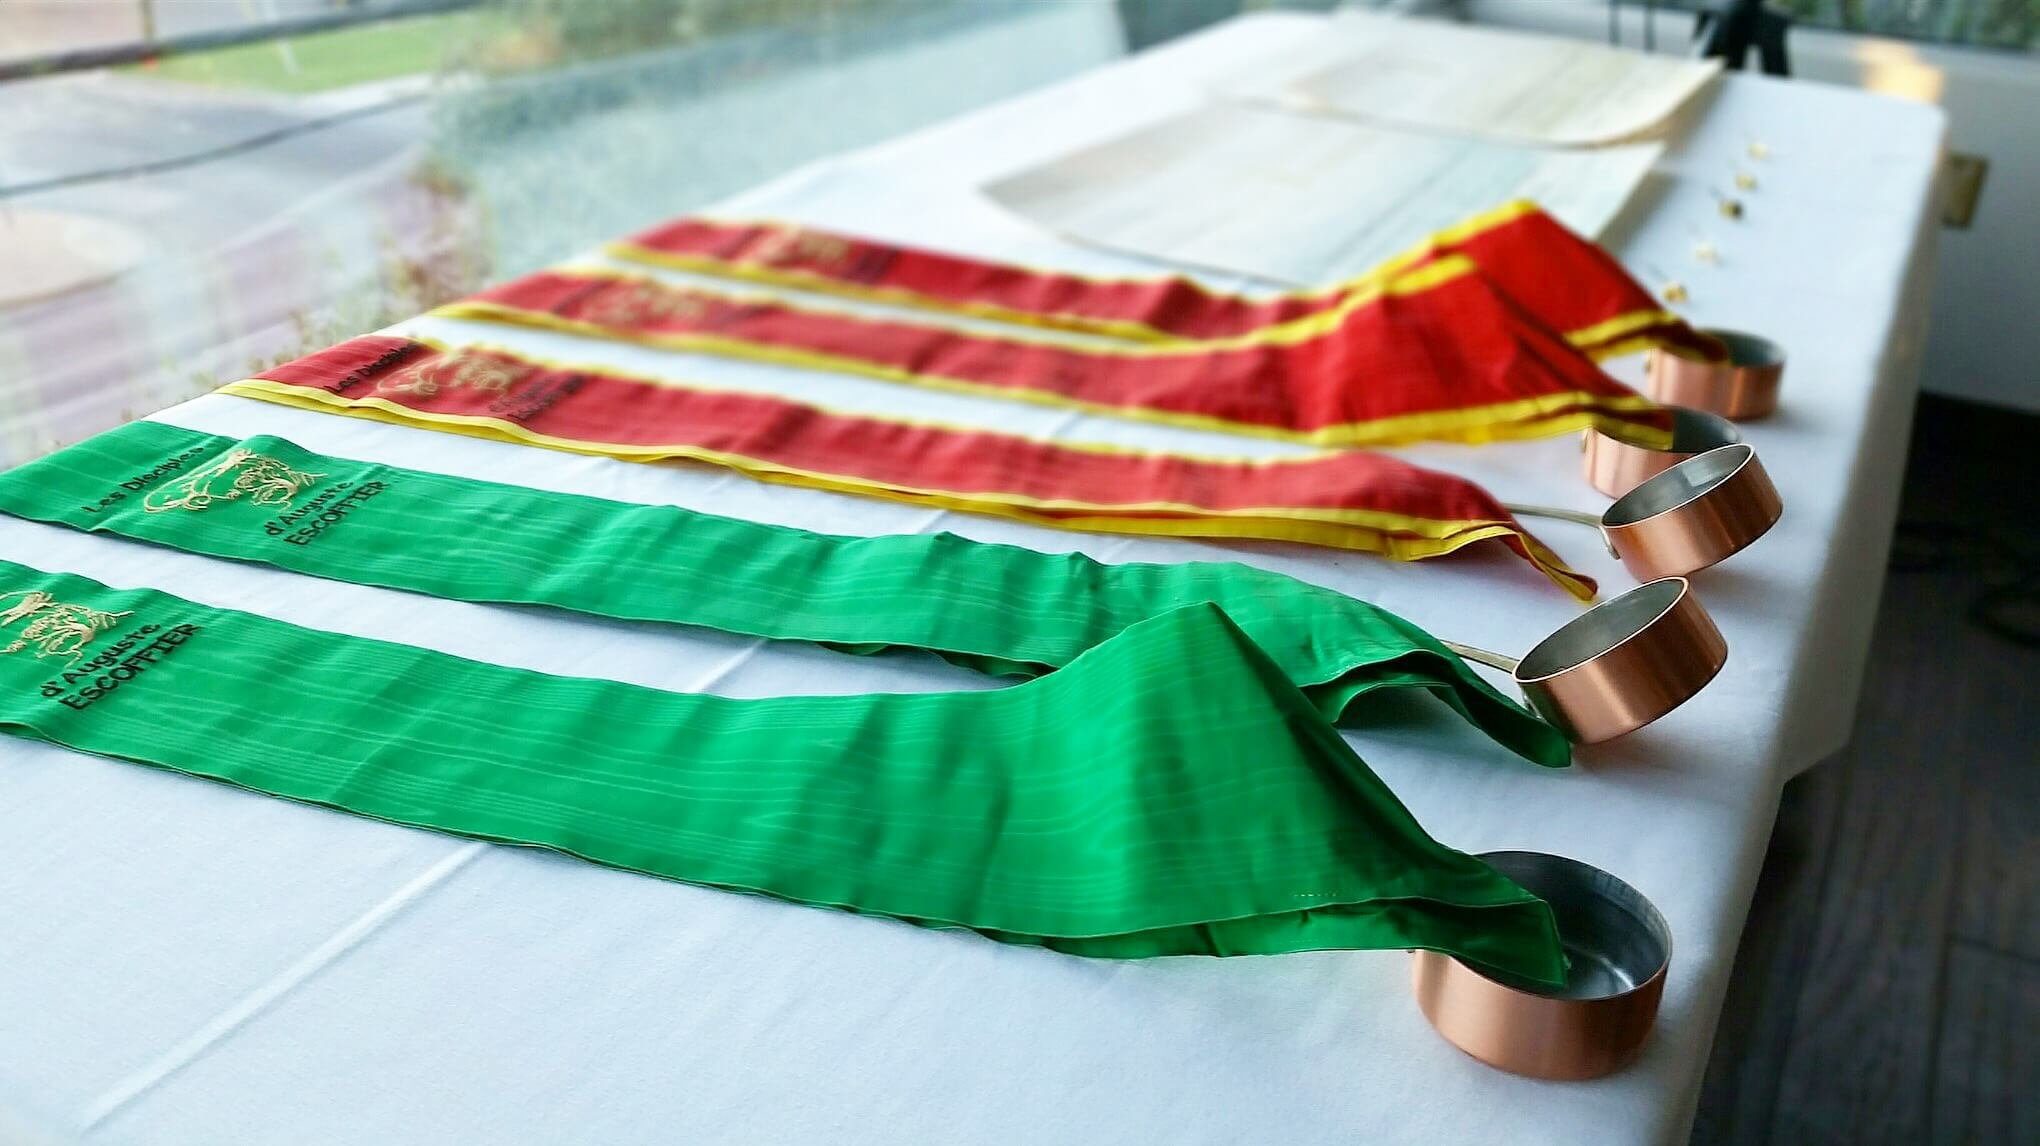 Les Disciples of Escoffier green and red sashes